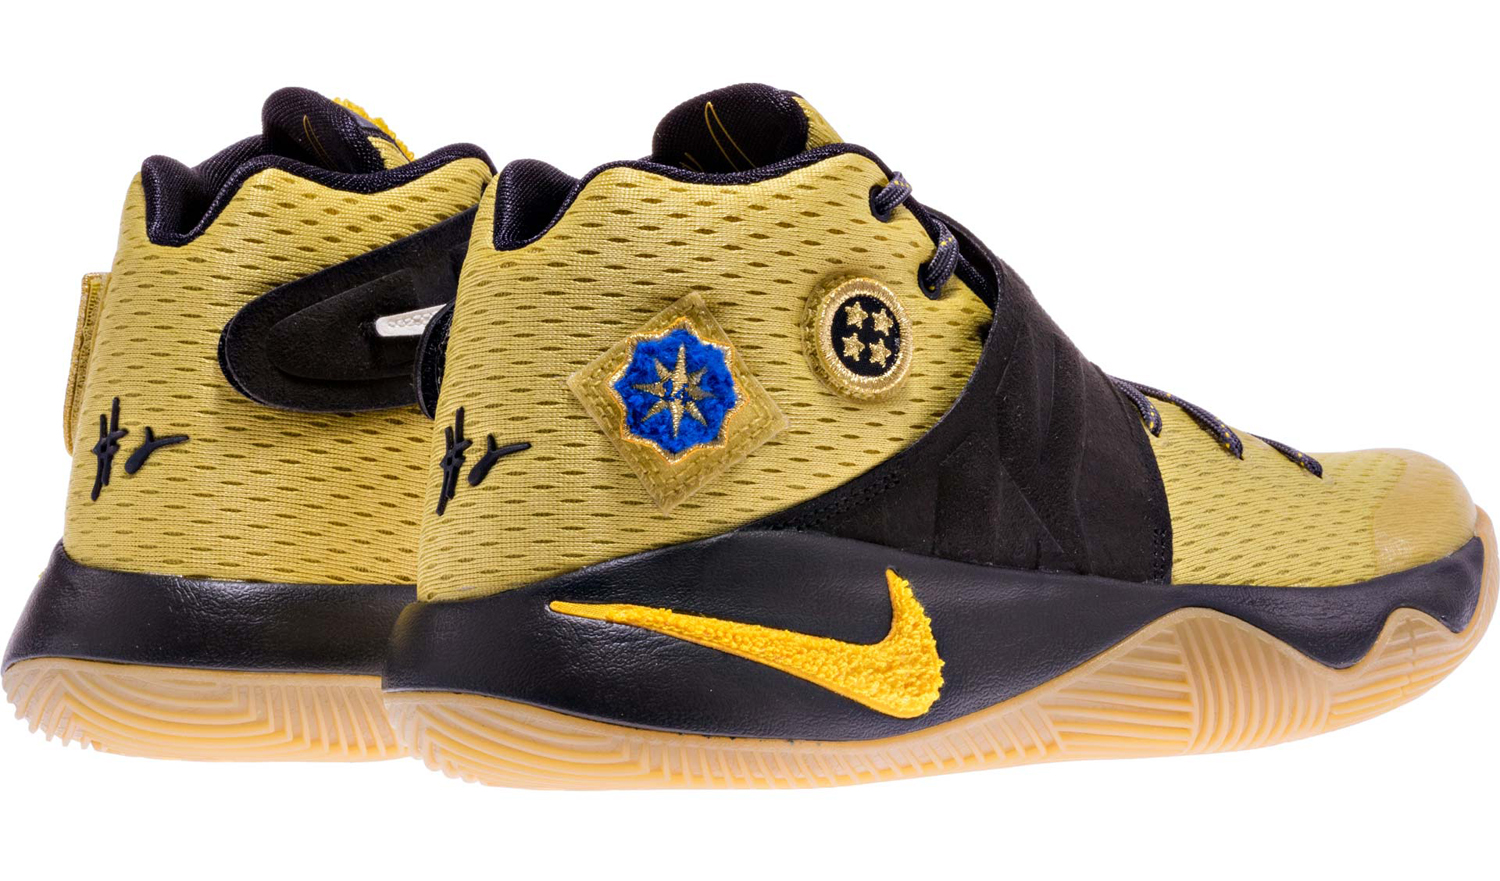 Kyrie Irving's Not an All-Star, But His All-Star Nike Shoe ...Kyrie Irving Shoes